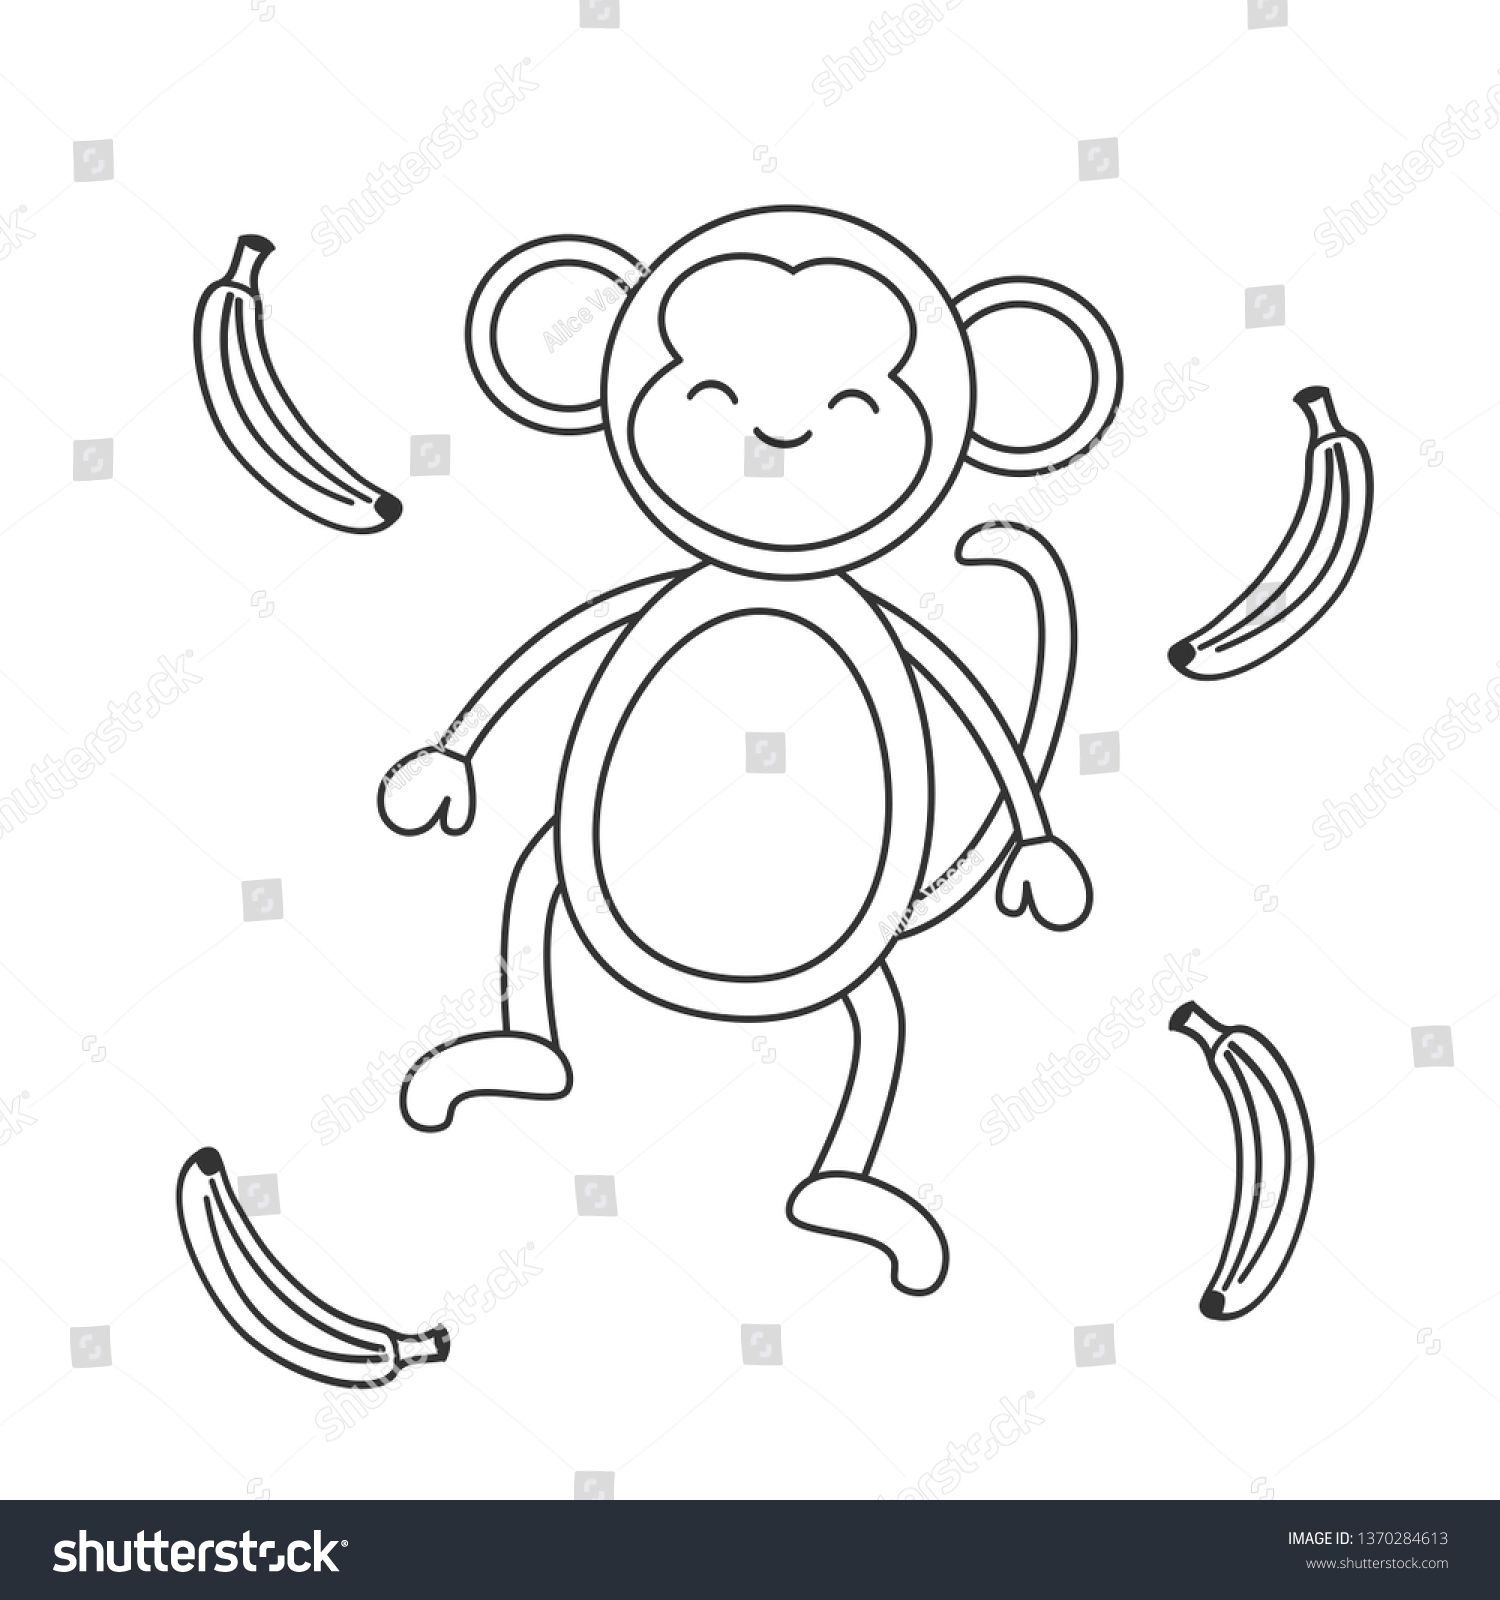 Cute Cartoon Black And White Monkey With Banana Vector Illustration For Coloring Art Ad Sponsored White Monkey Colorful Art Cute Cartoon Black And White